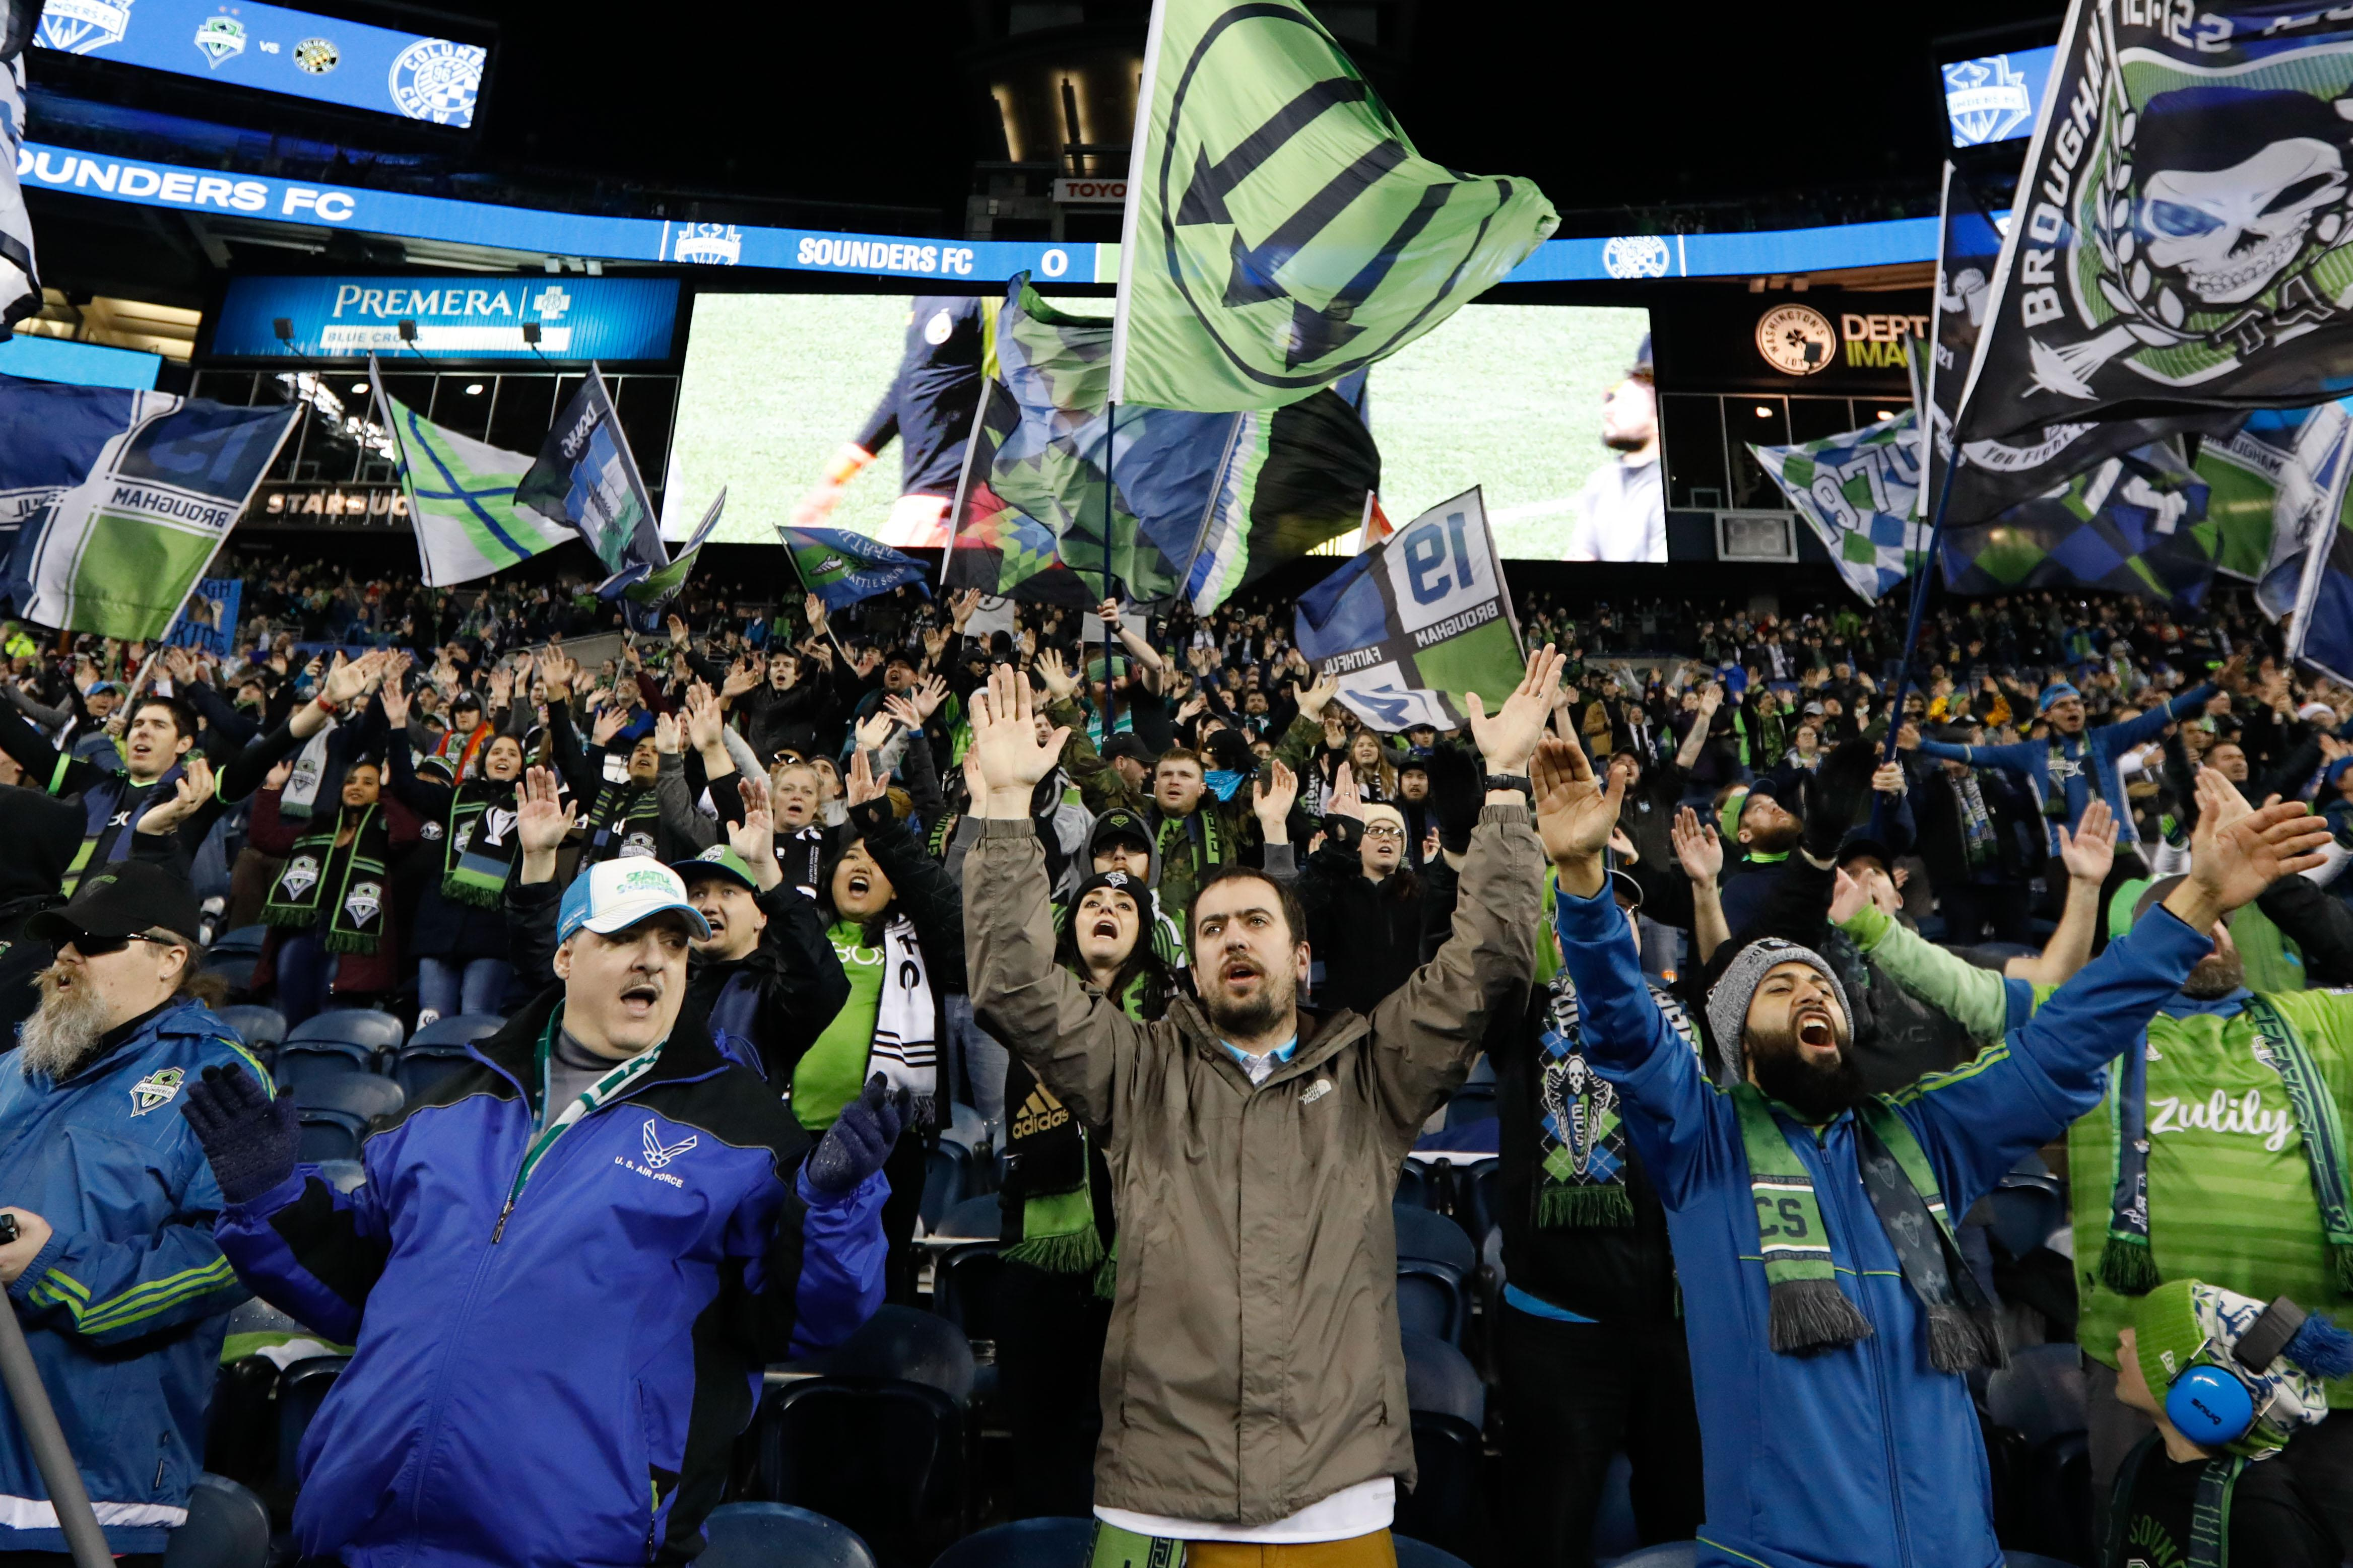 Not ideal financially for MLS to play in empty stadiums